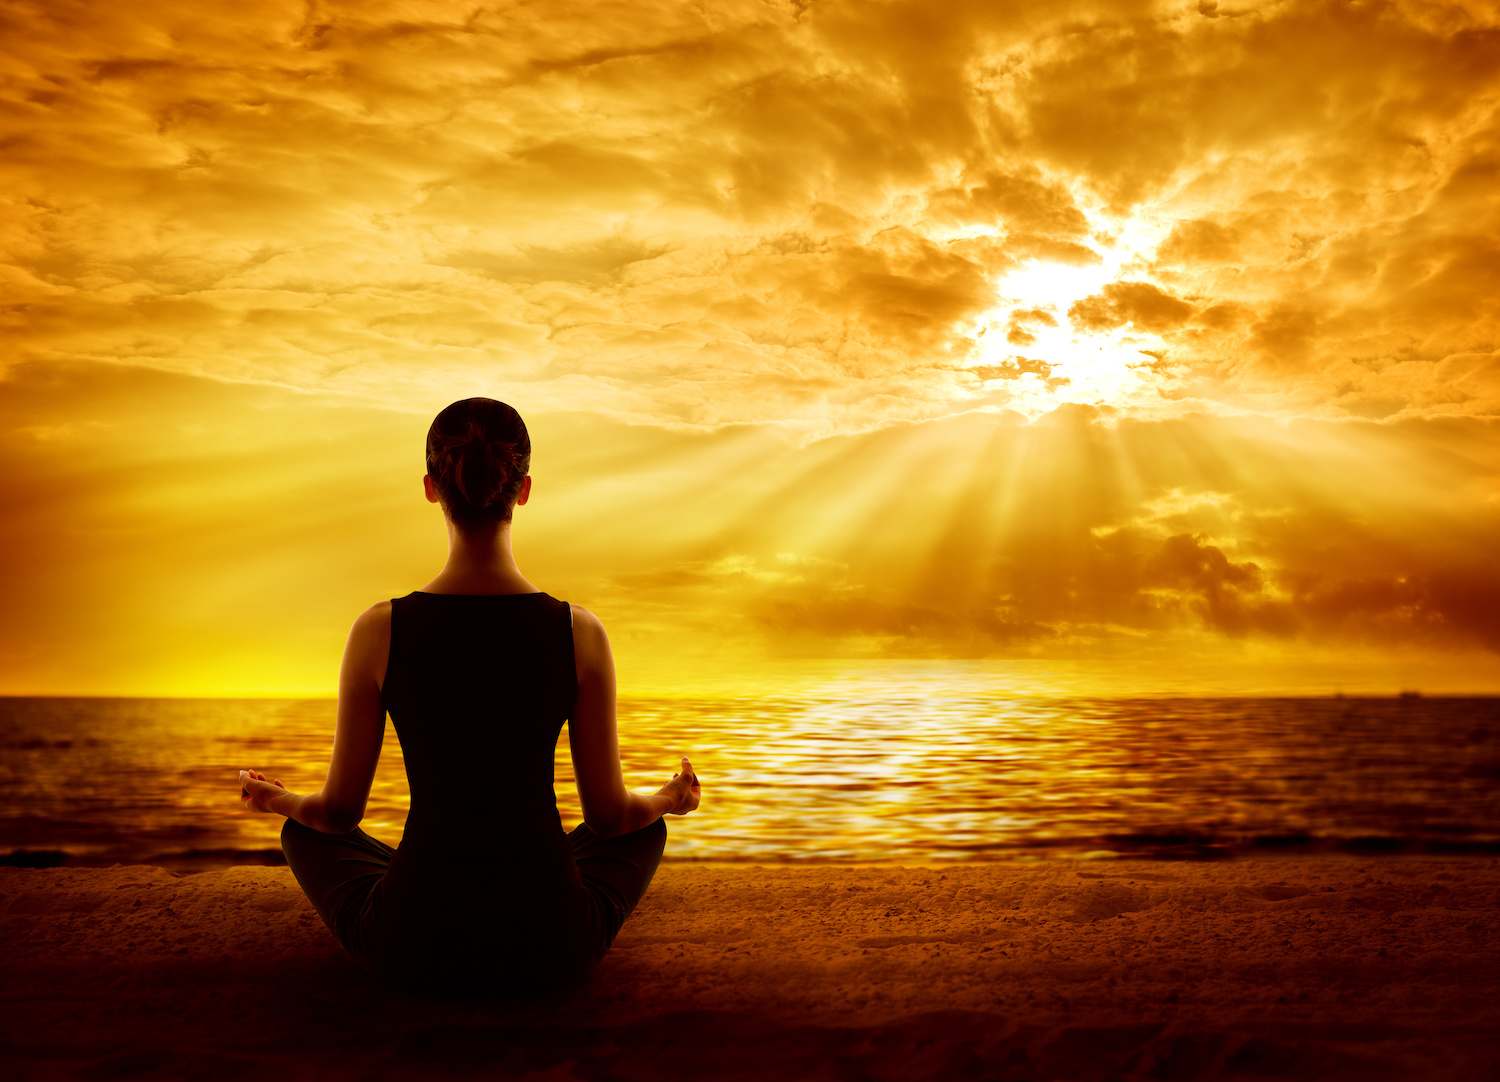 How effective is meditation in coping with depression? 1